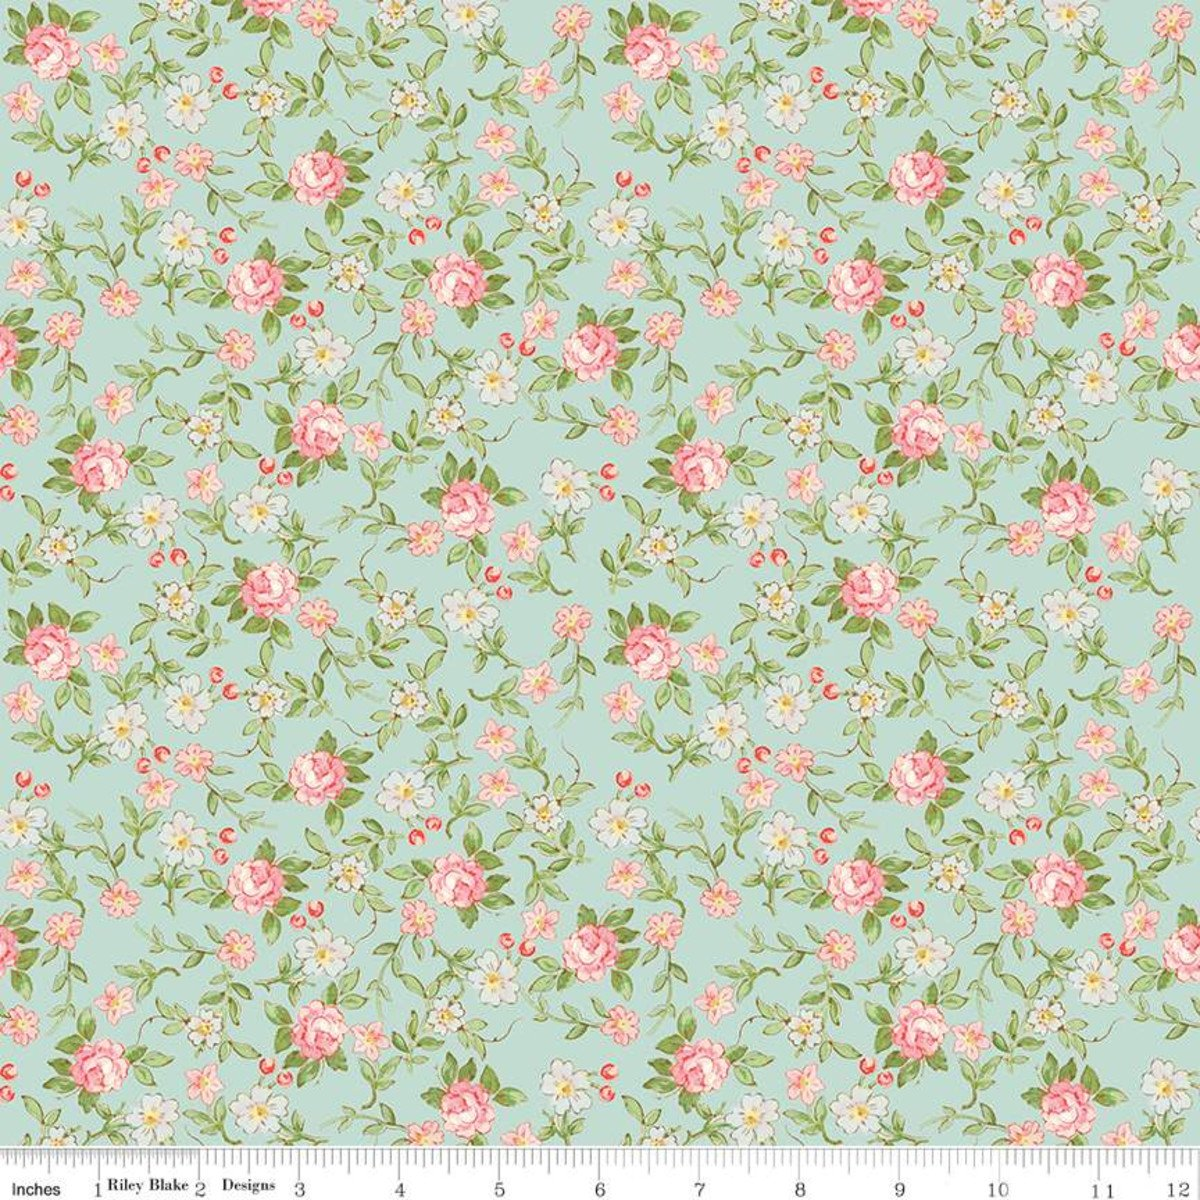 Rose & Violets Garden Sweet Blossoms Songbird Fabric by Riley Blake